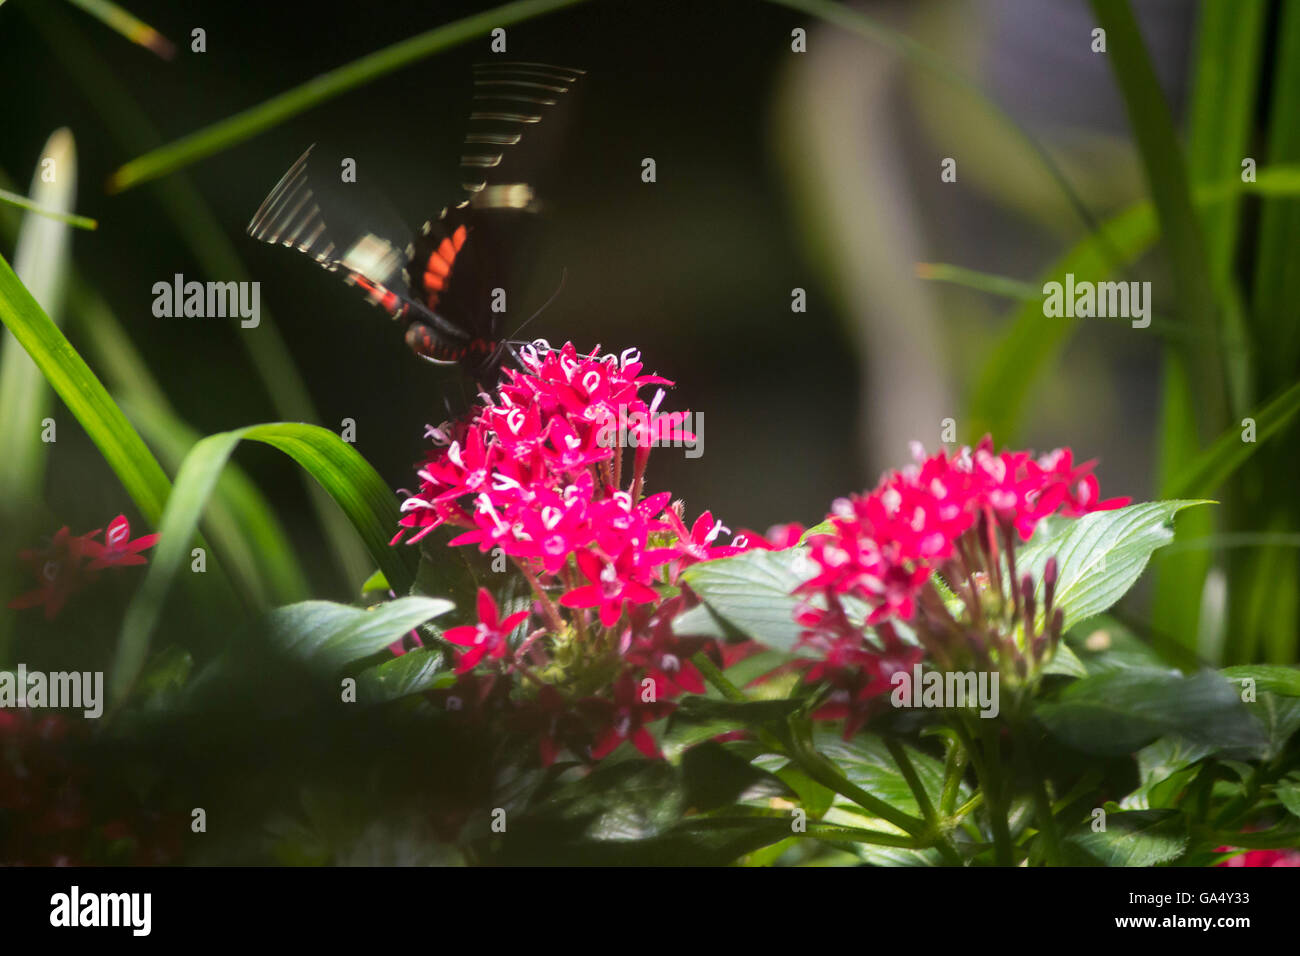 A Red Admiral butterfly captured in flight in a Butterfly exhibit at the Natural History Museum New York City - Stock Image